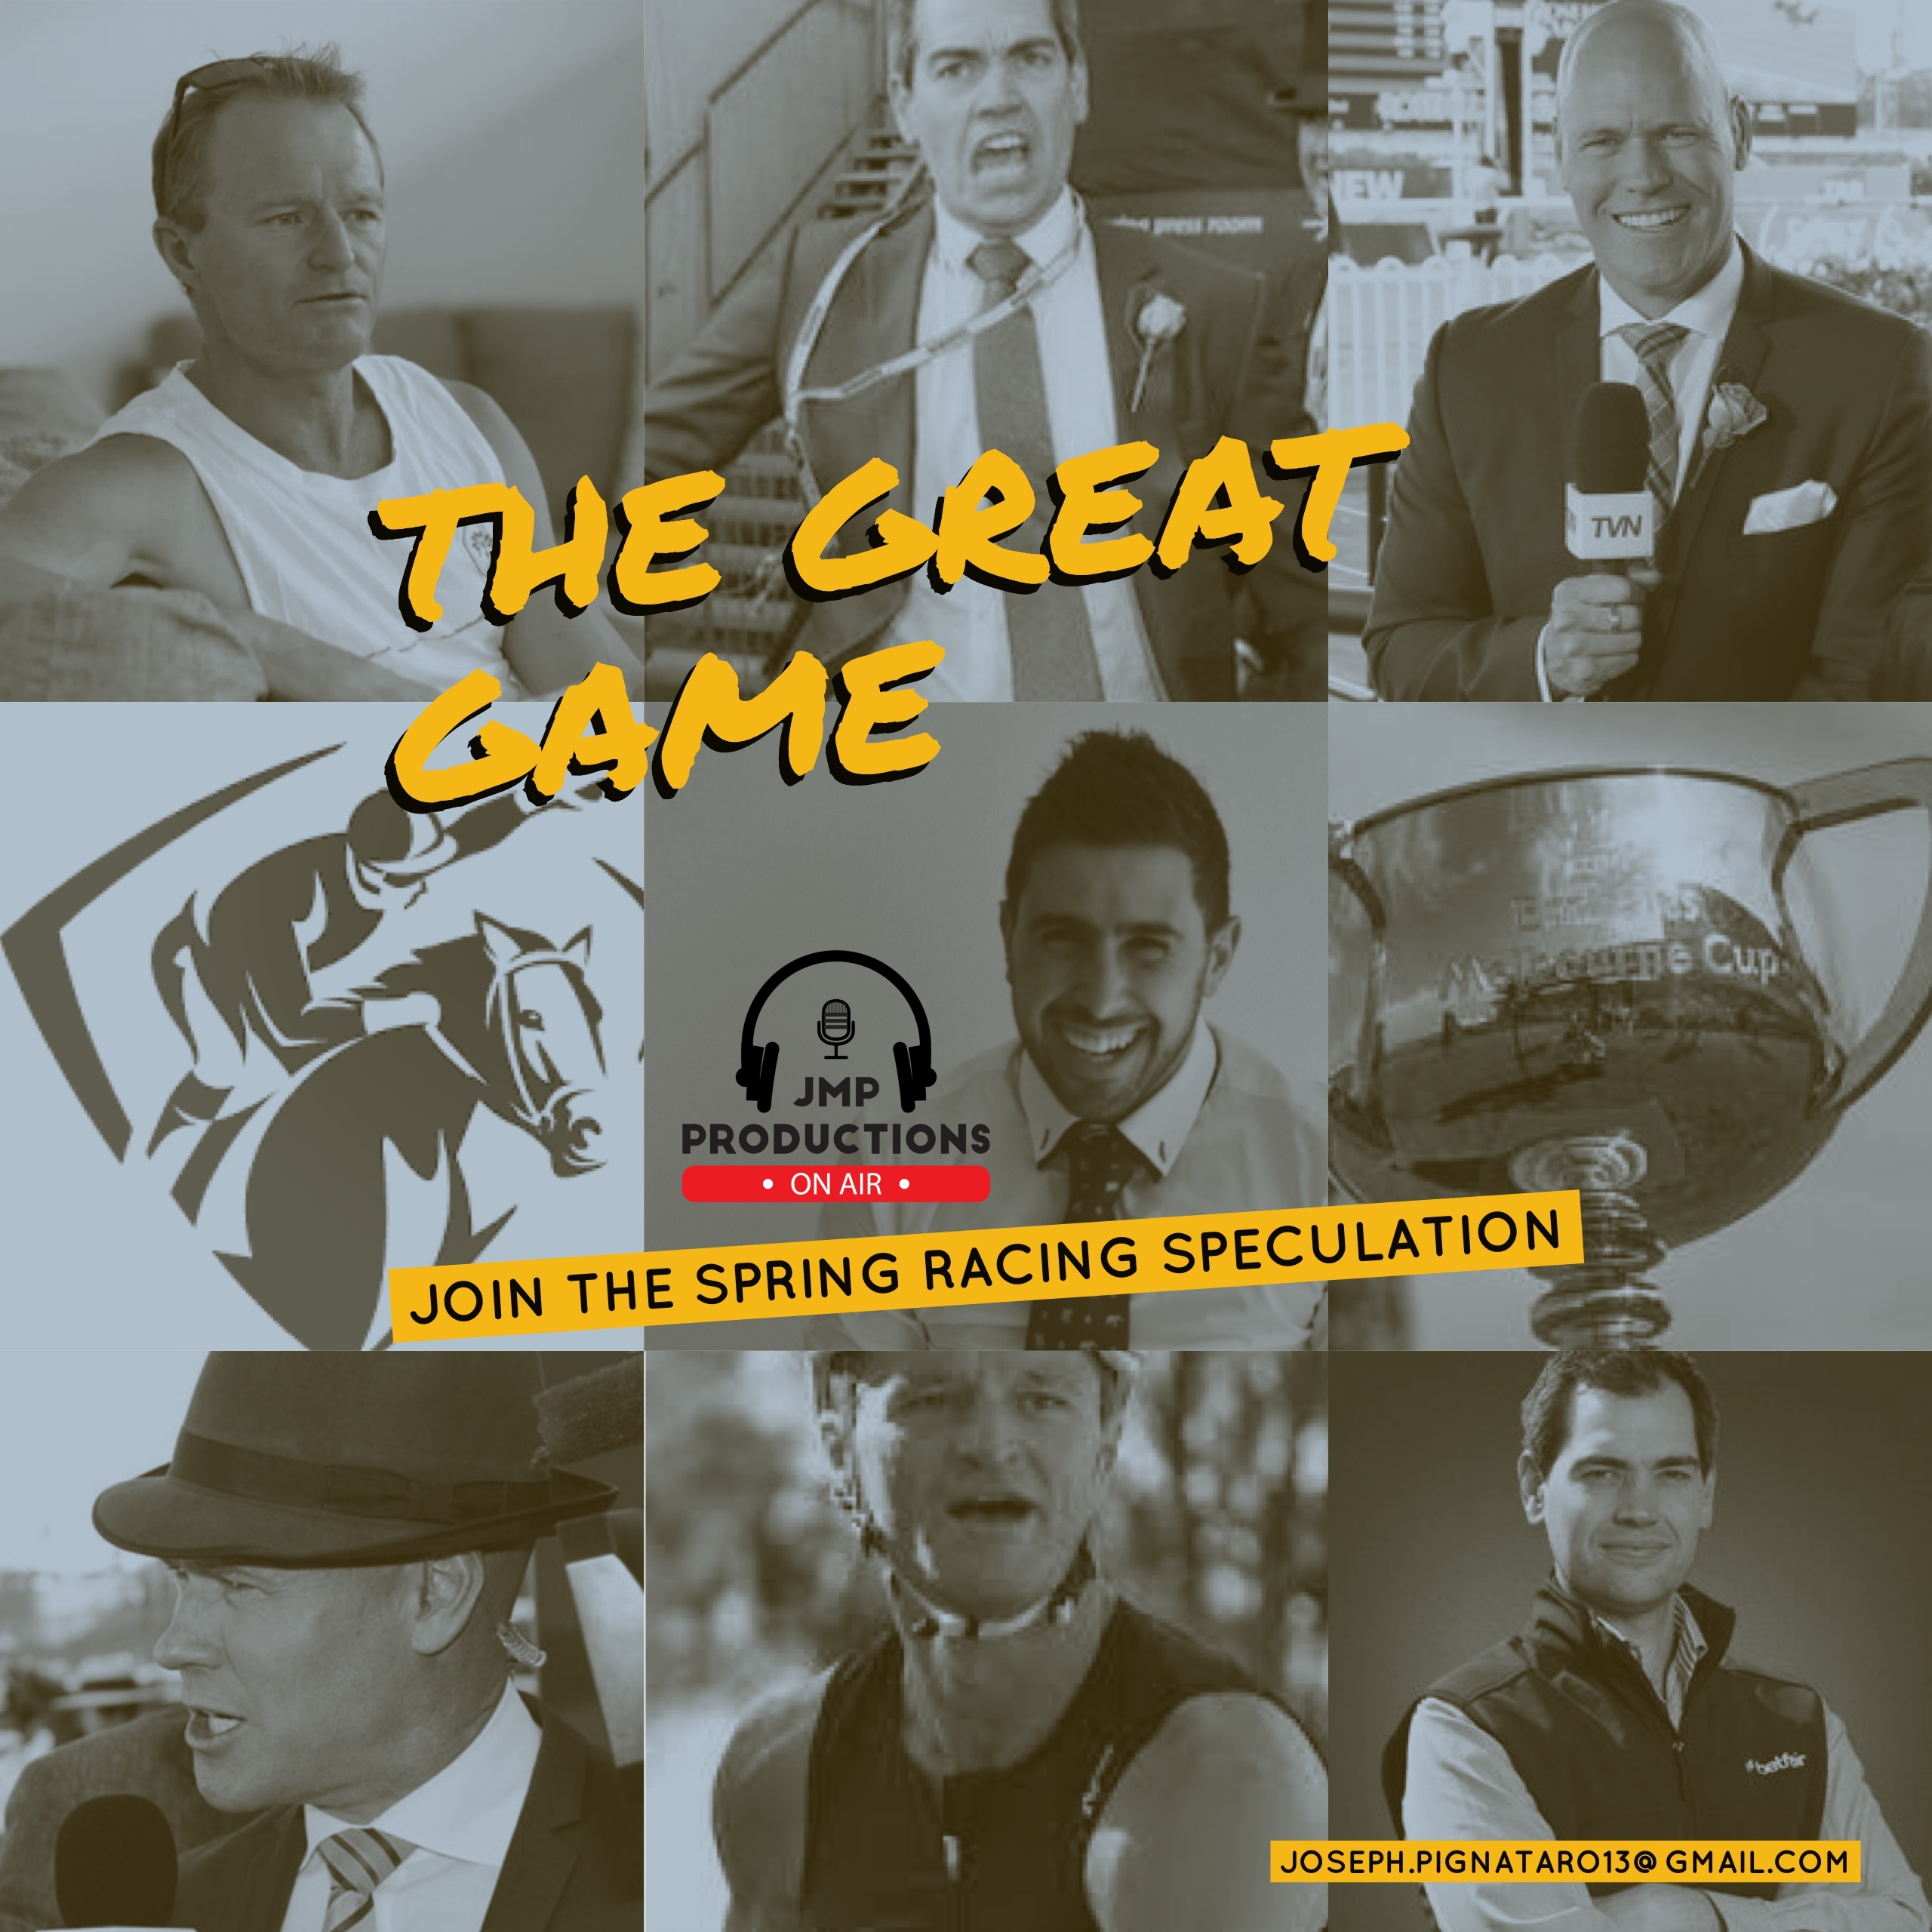 Episode 18 - The Great Game (April 18, 2019)